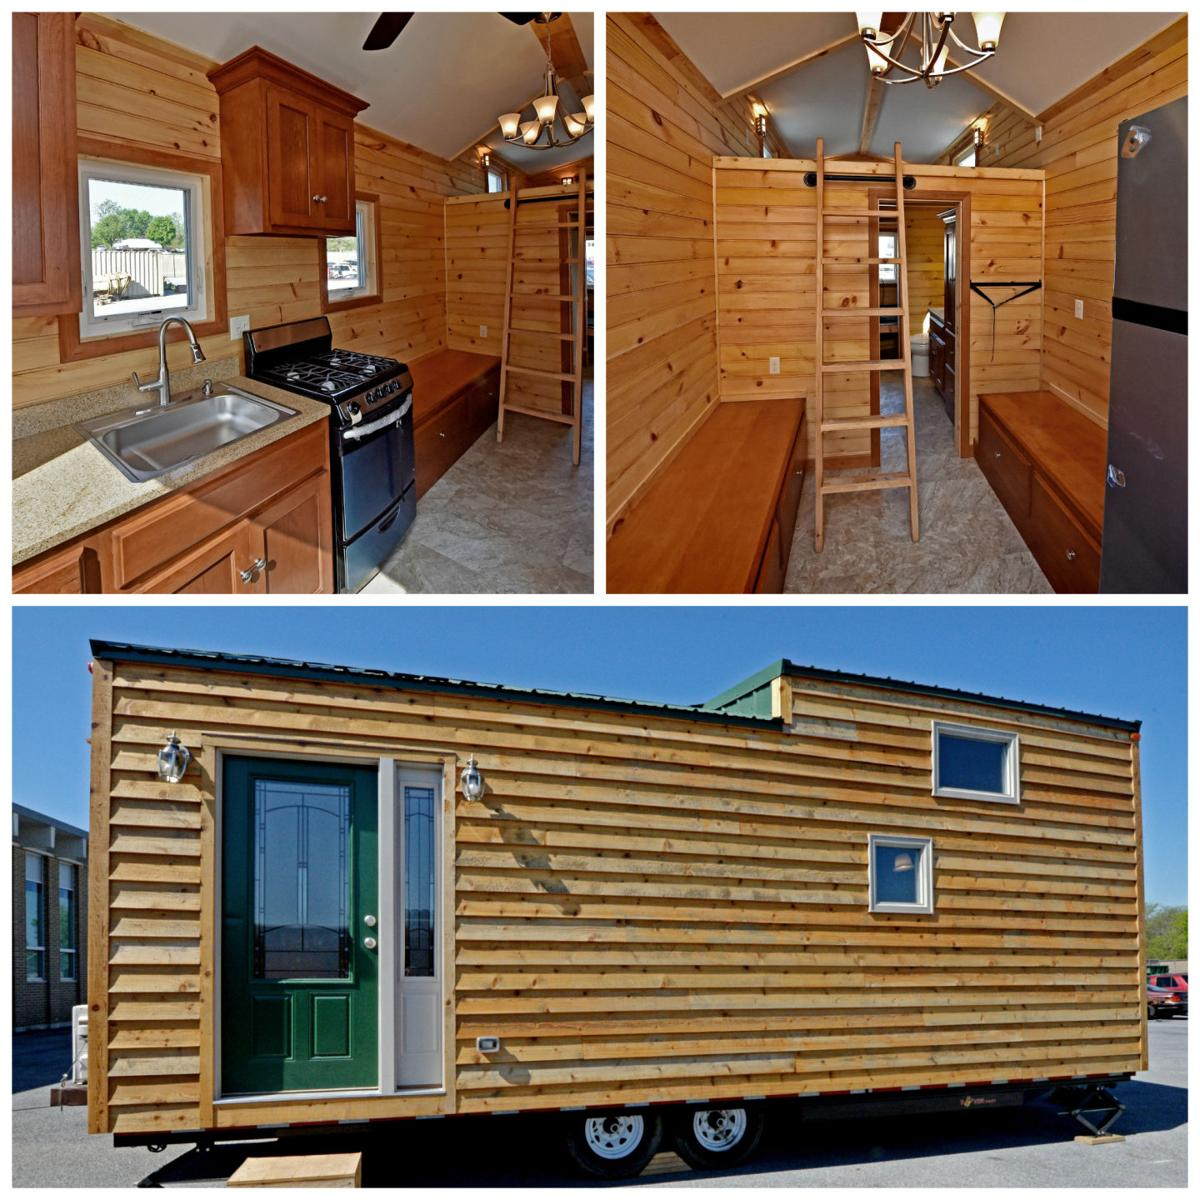 More than 200 high school students build tiny house to be sold for ...